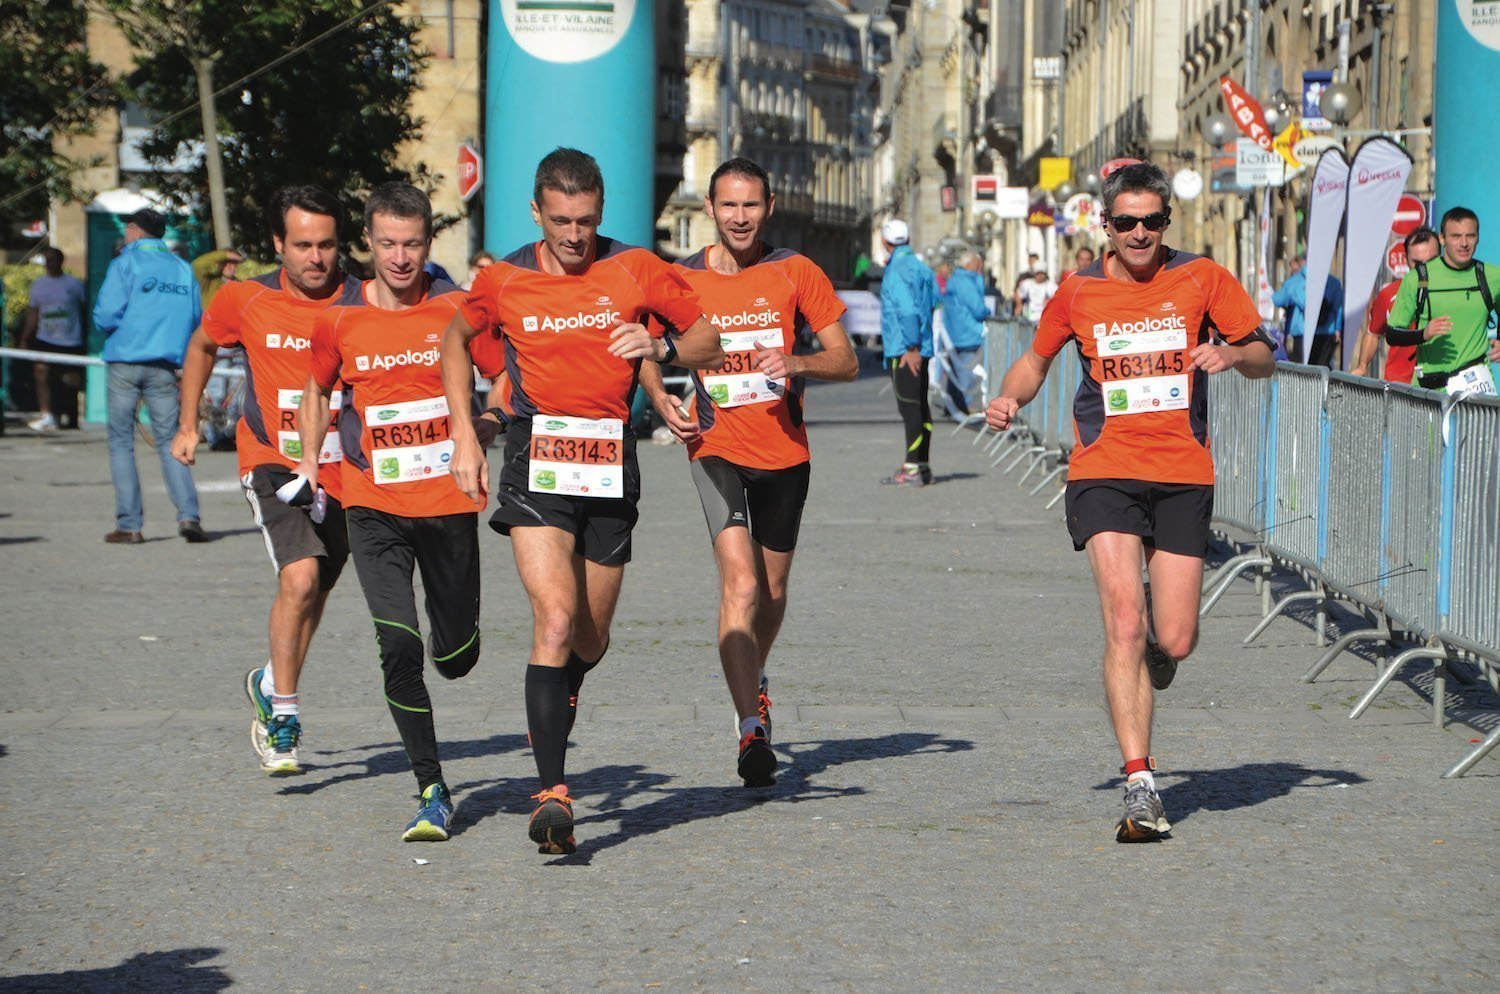 The green Marathon in Rennes